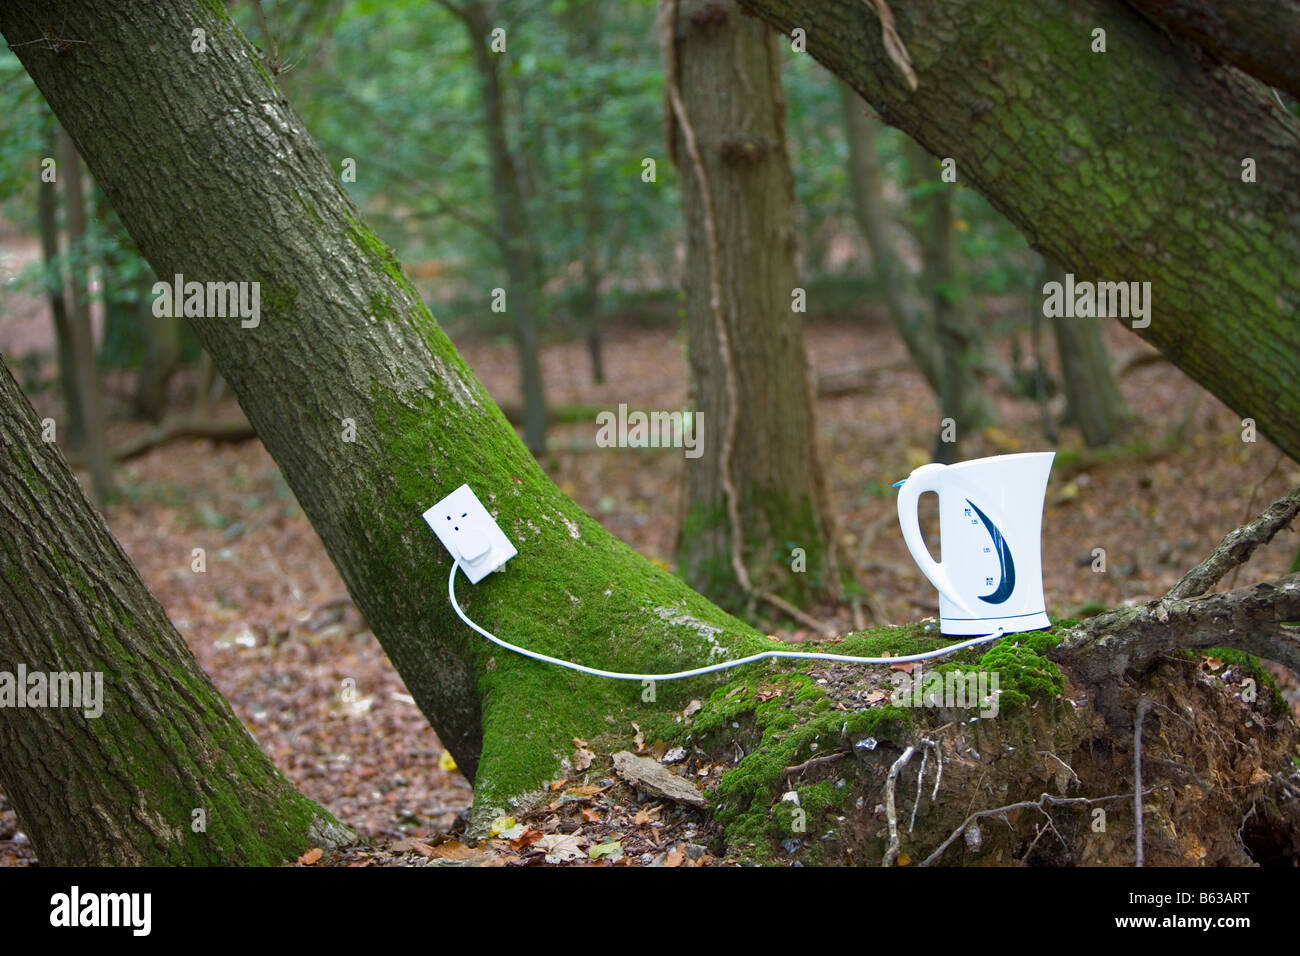 Electrical outlet and kettle on tree in forest - Stock Image